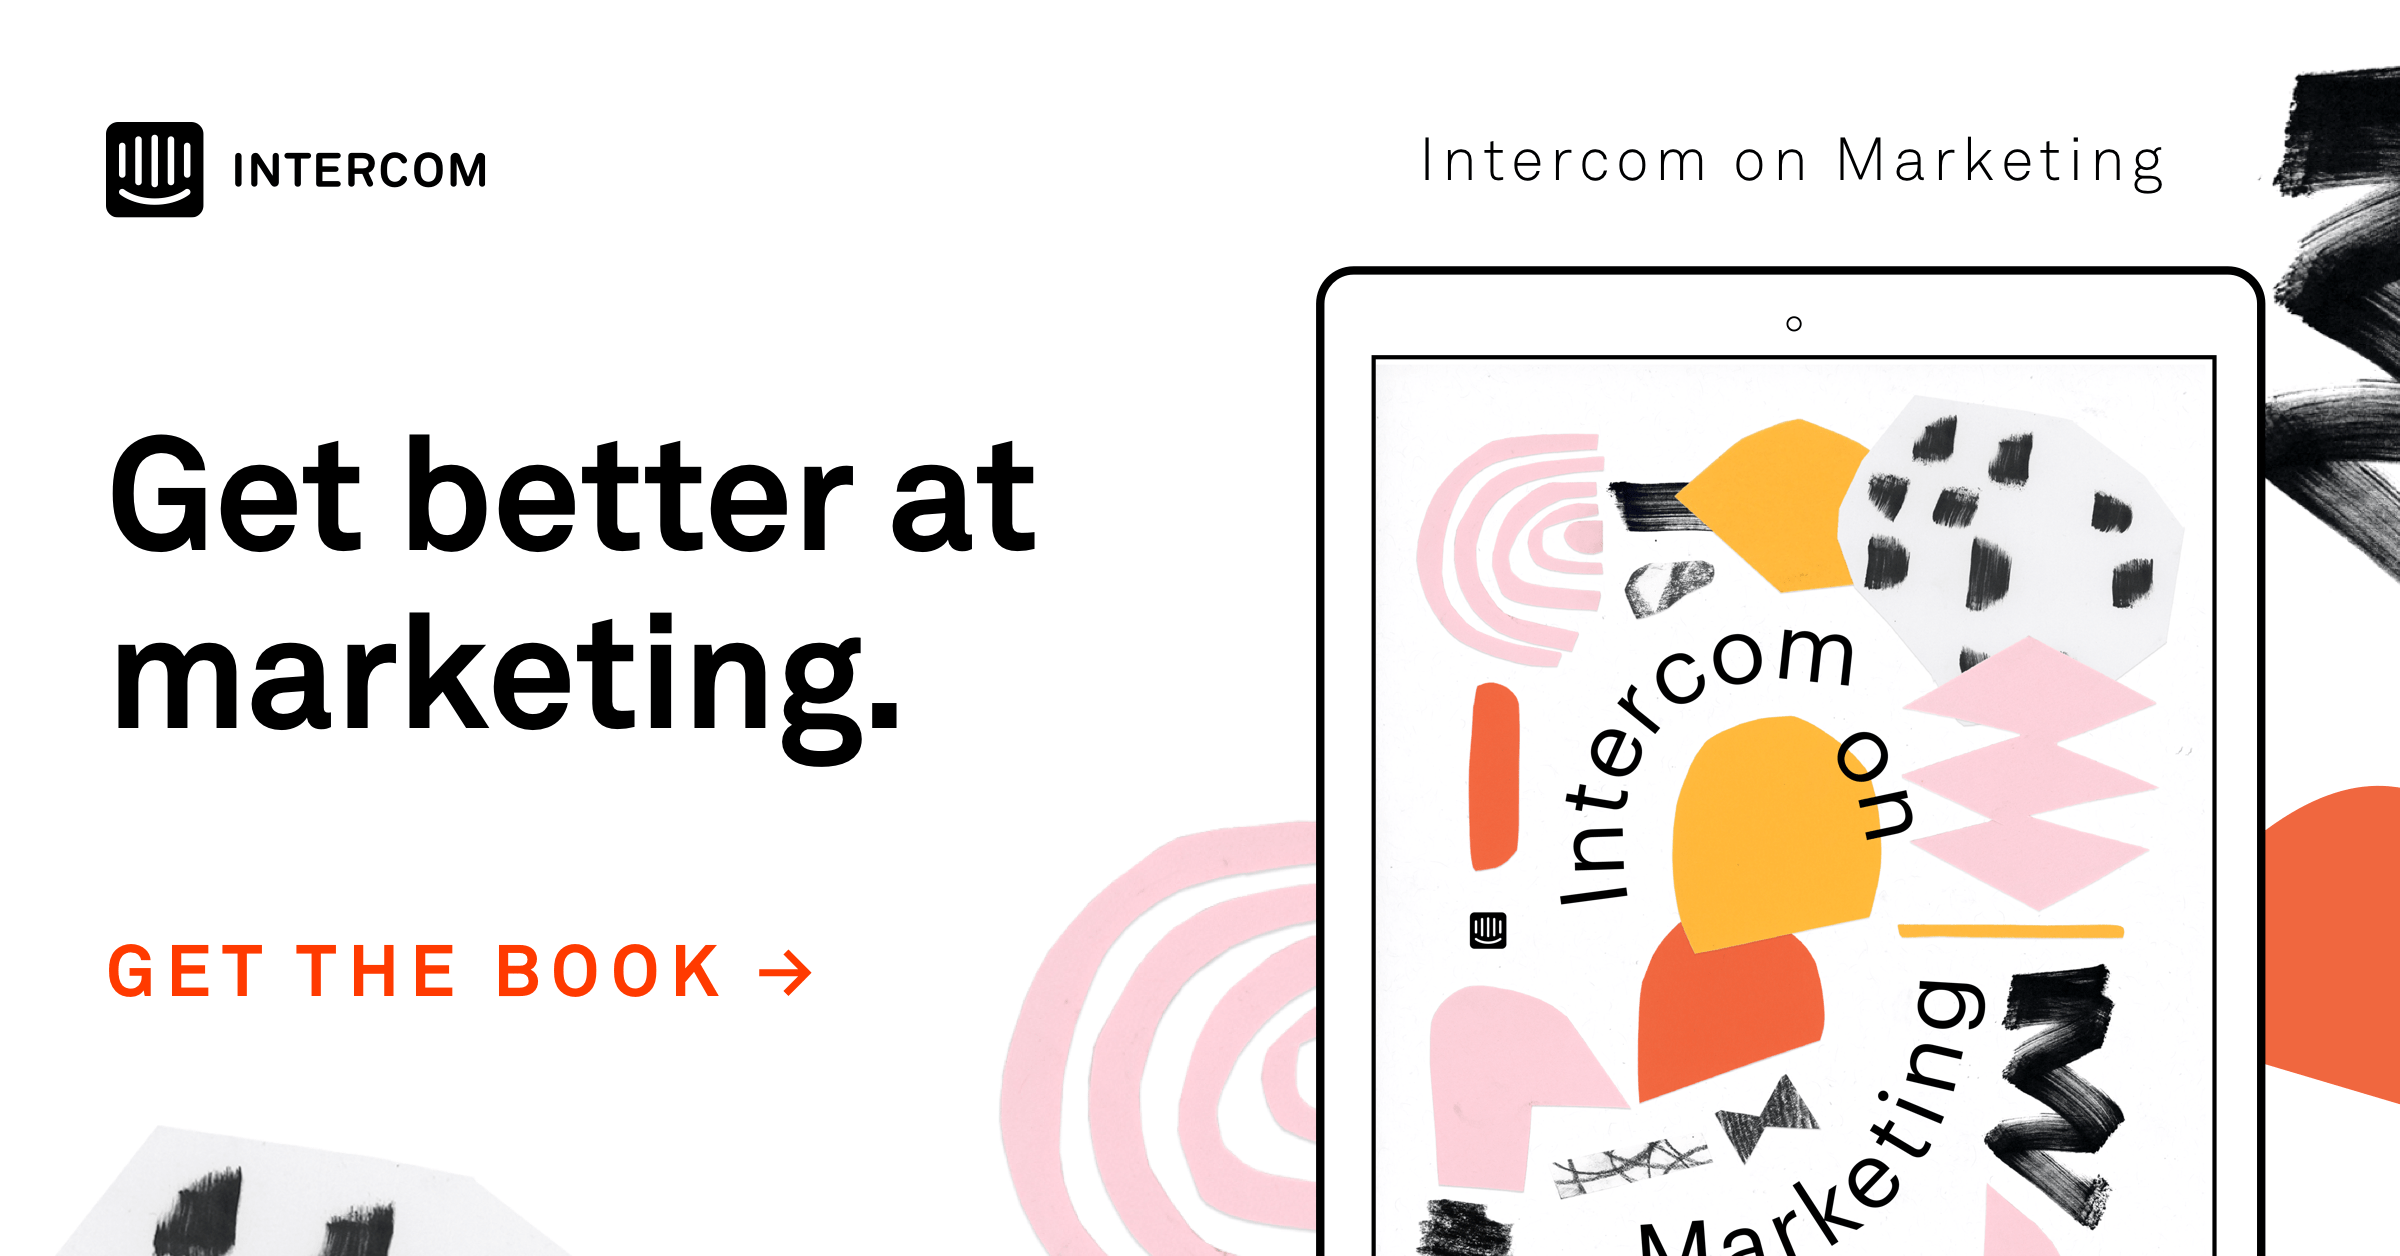 Intercom on Marketing